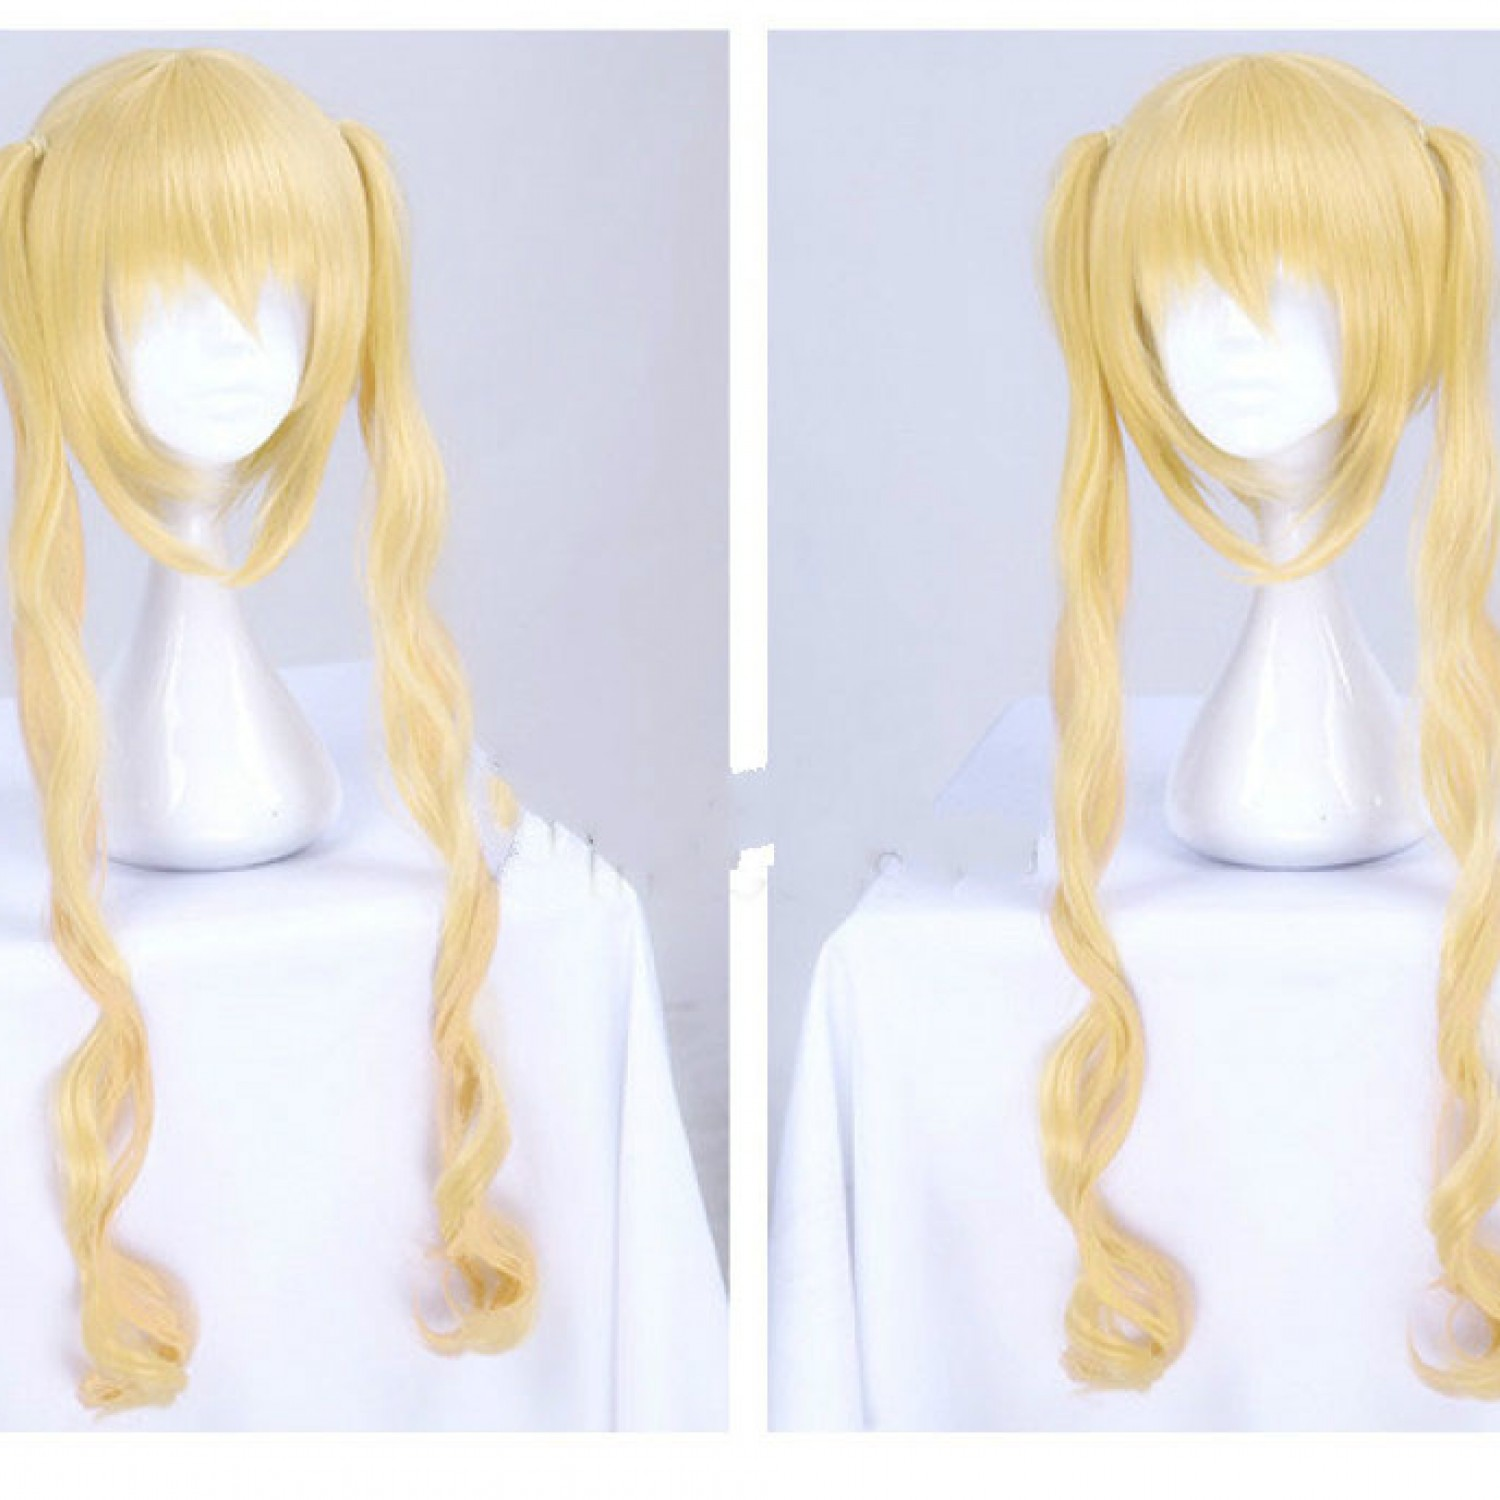 Blend S Kaho Hinata Blonde Two Ponytails Curly Cosplay Wig Heat Resistant Fiber Synthetic Hair Wigs